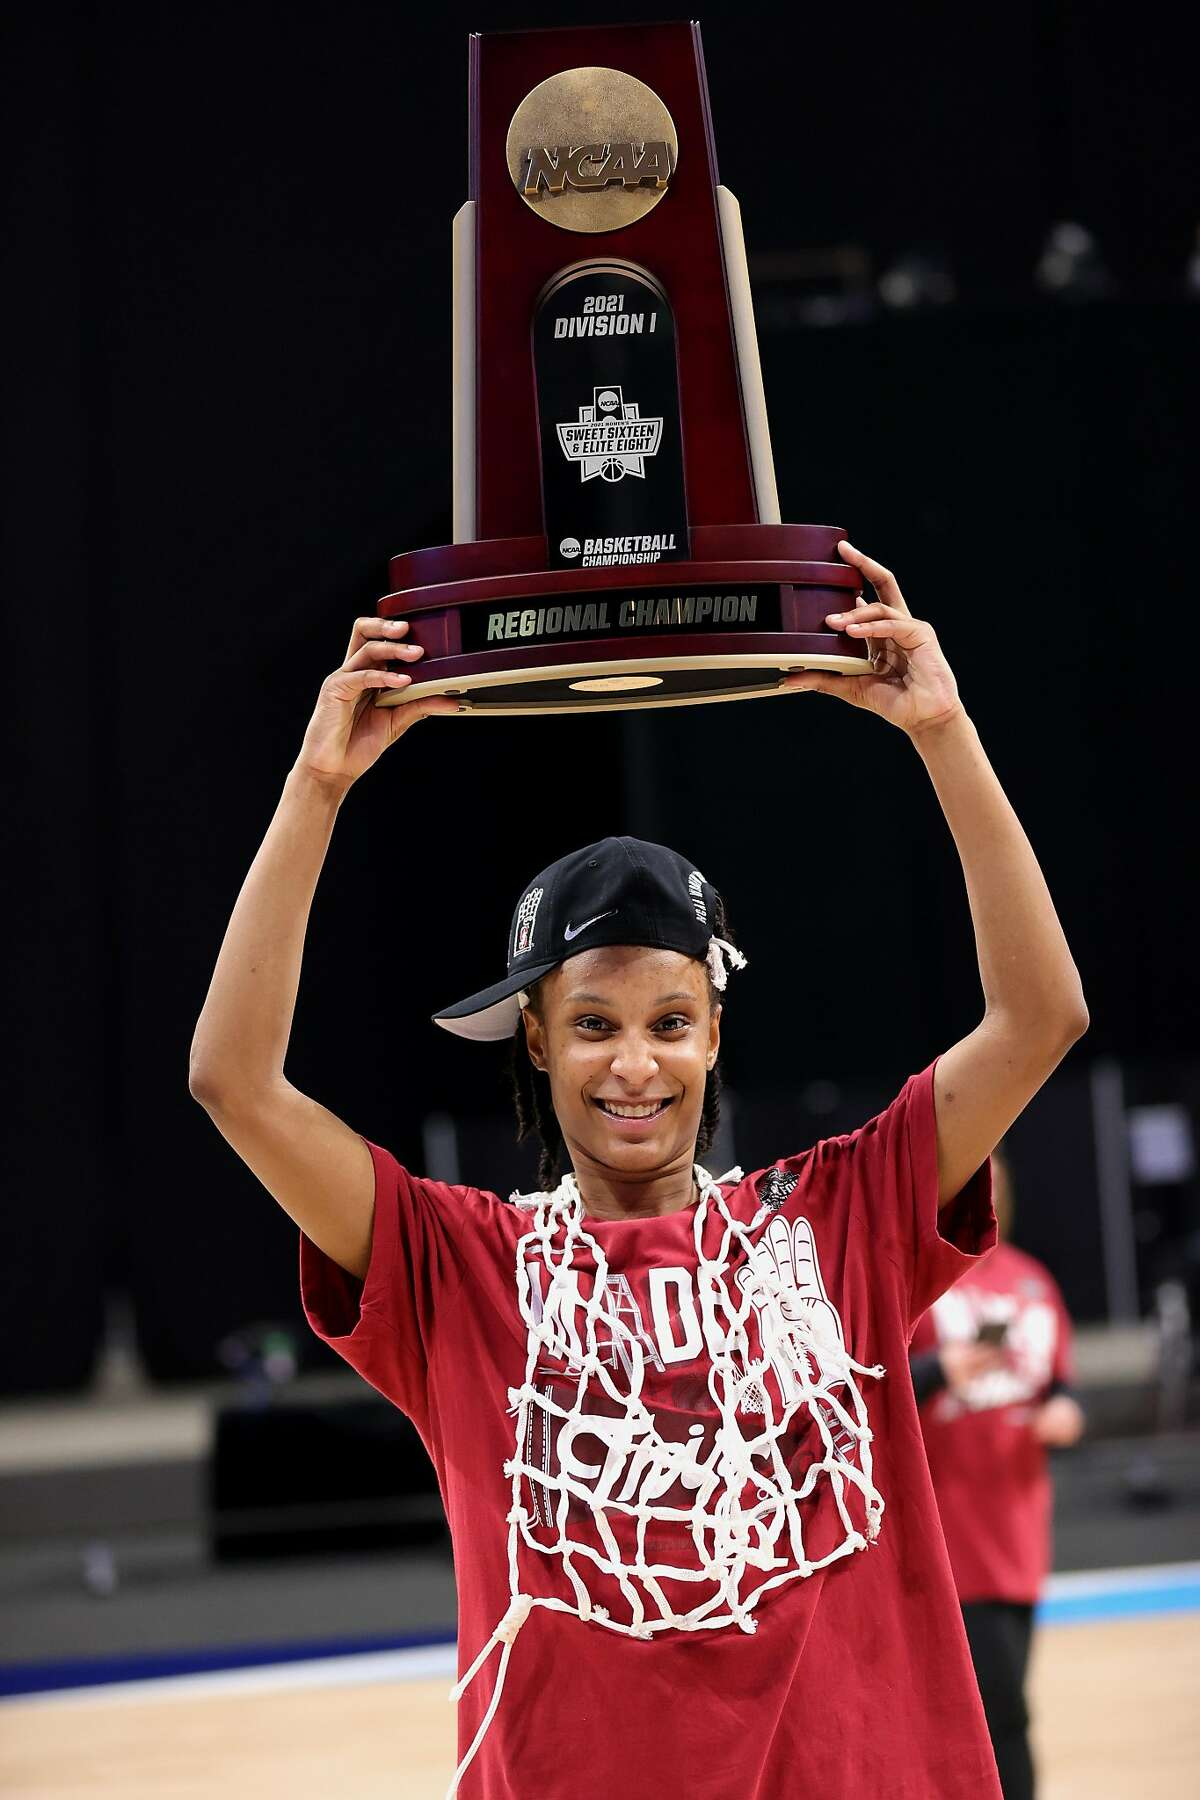 SAN ANTONIO, TEXAS - MARCH 30: Kiana Williams #23 of the Stanford Cardinal celebrates their win over the Louisville Cardinals in the Elite Eight round of the NCAA Women's Basketball Tournament at the Alamodome on March 30, 2021 in San Antonio, Texas. (Photo by Carmen Mandato/Getty Images)